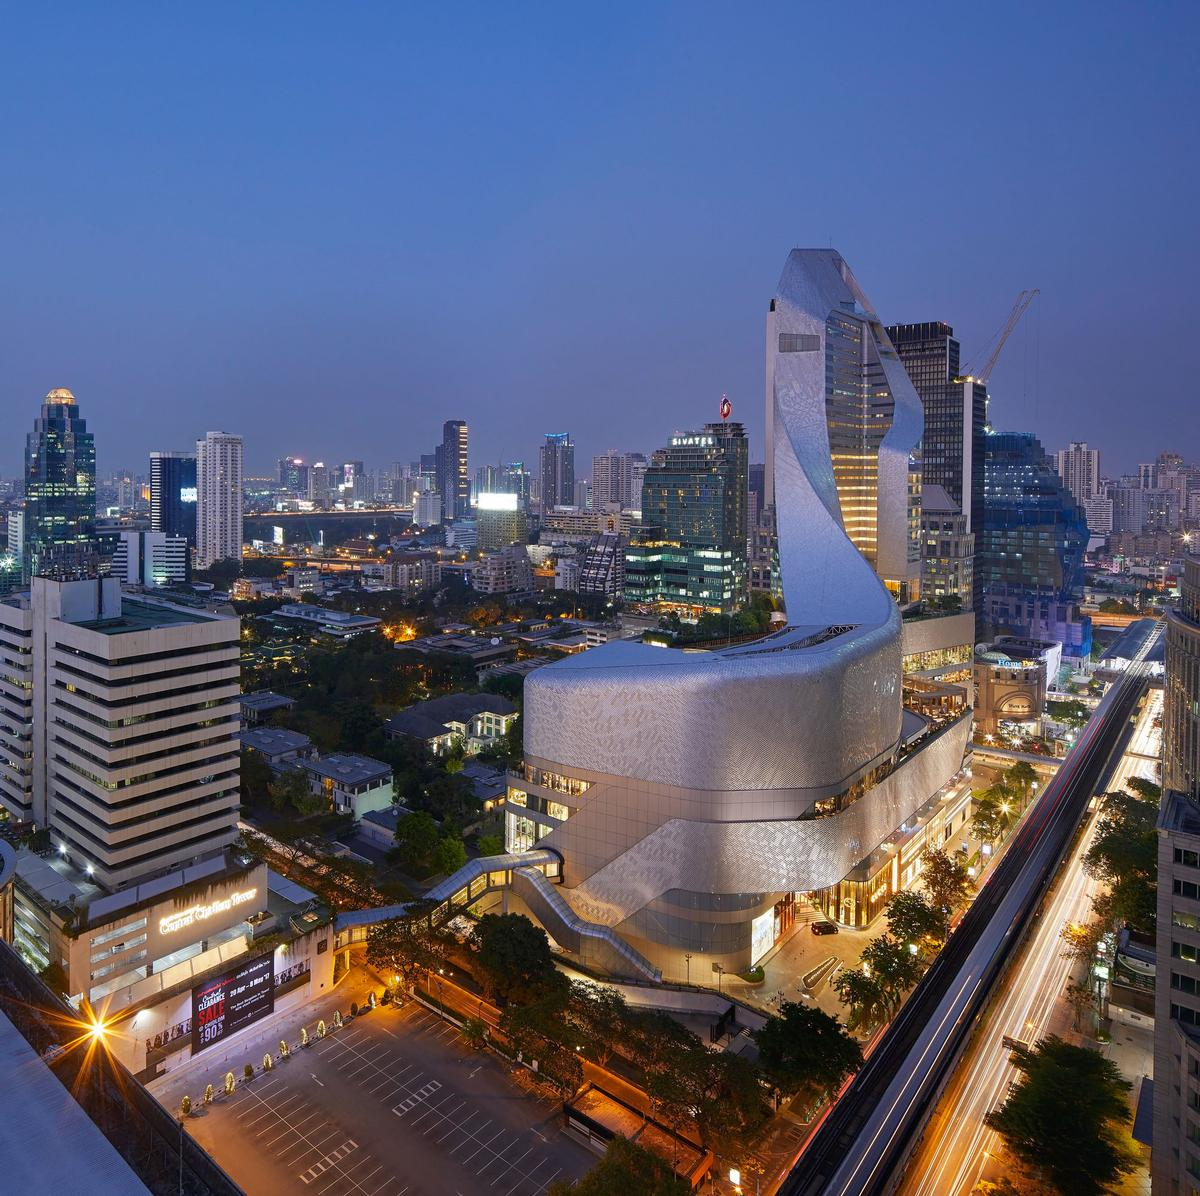 The 1.5 million sq ft complex has been designed to 'bring a distinguishing new silhouette' to Bangkok / Hufton + Crow